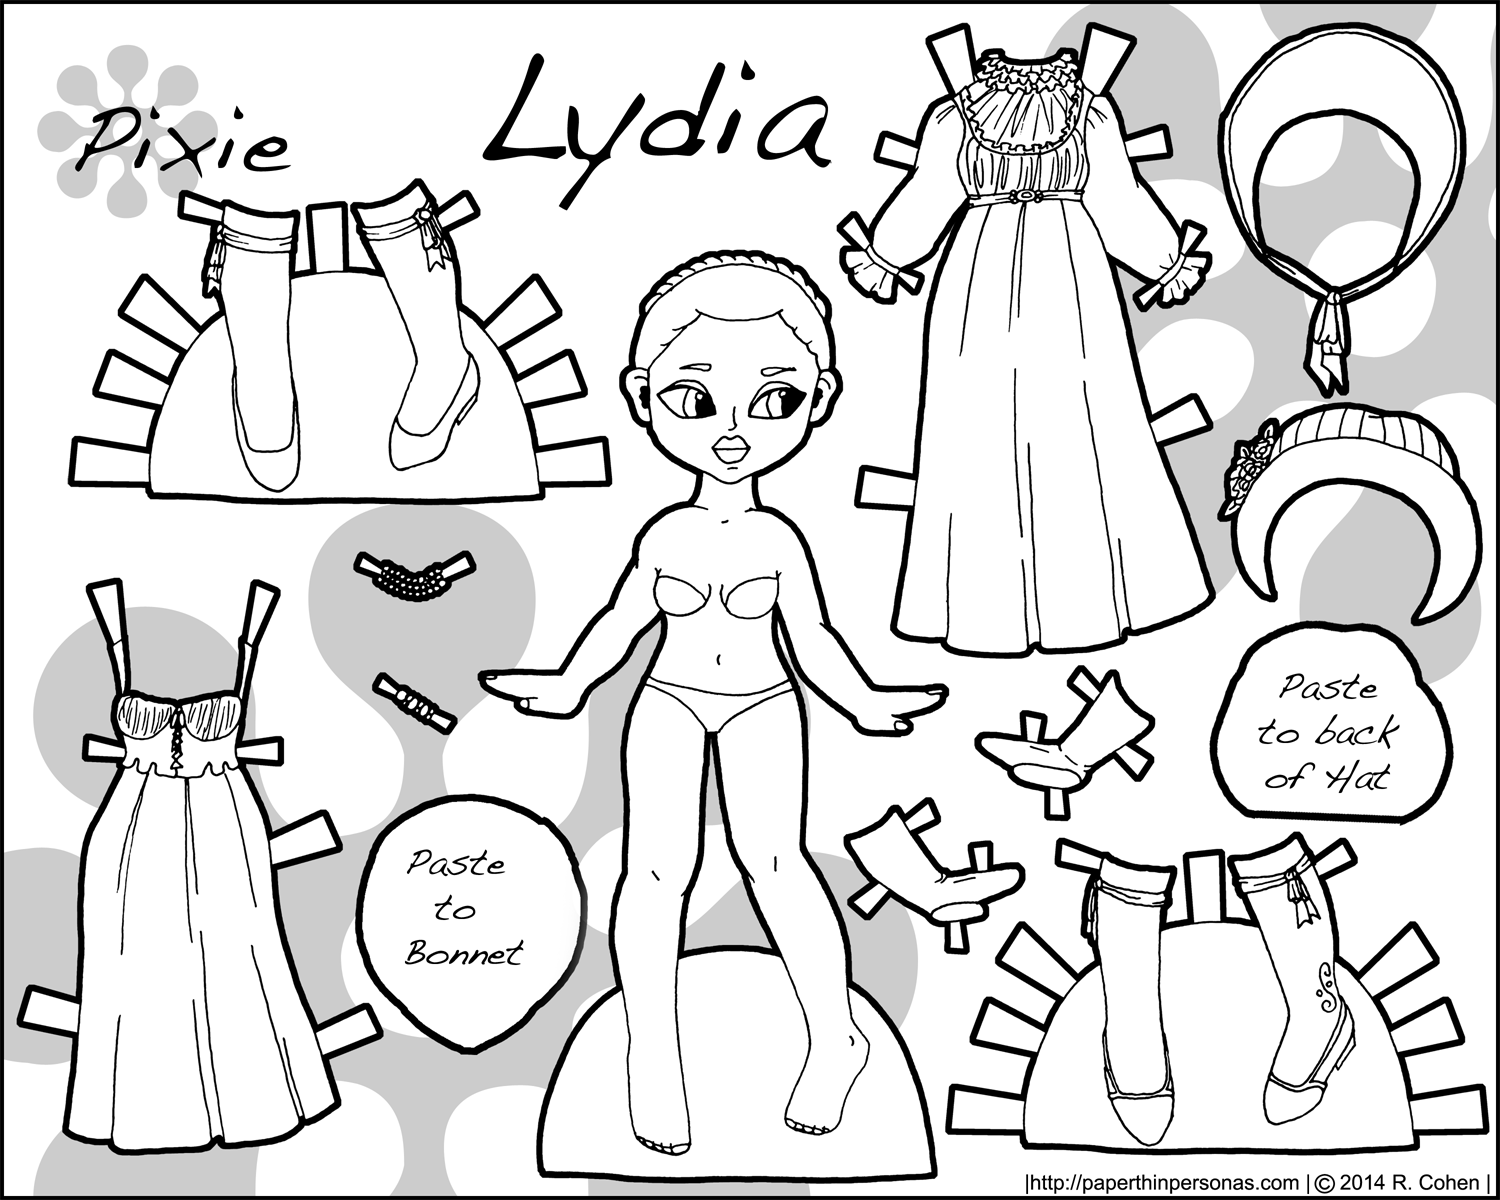 Pixie Lydia A Regency Paper Doll Thin Personas